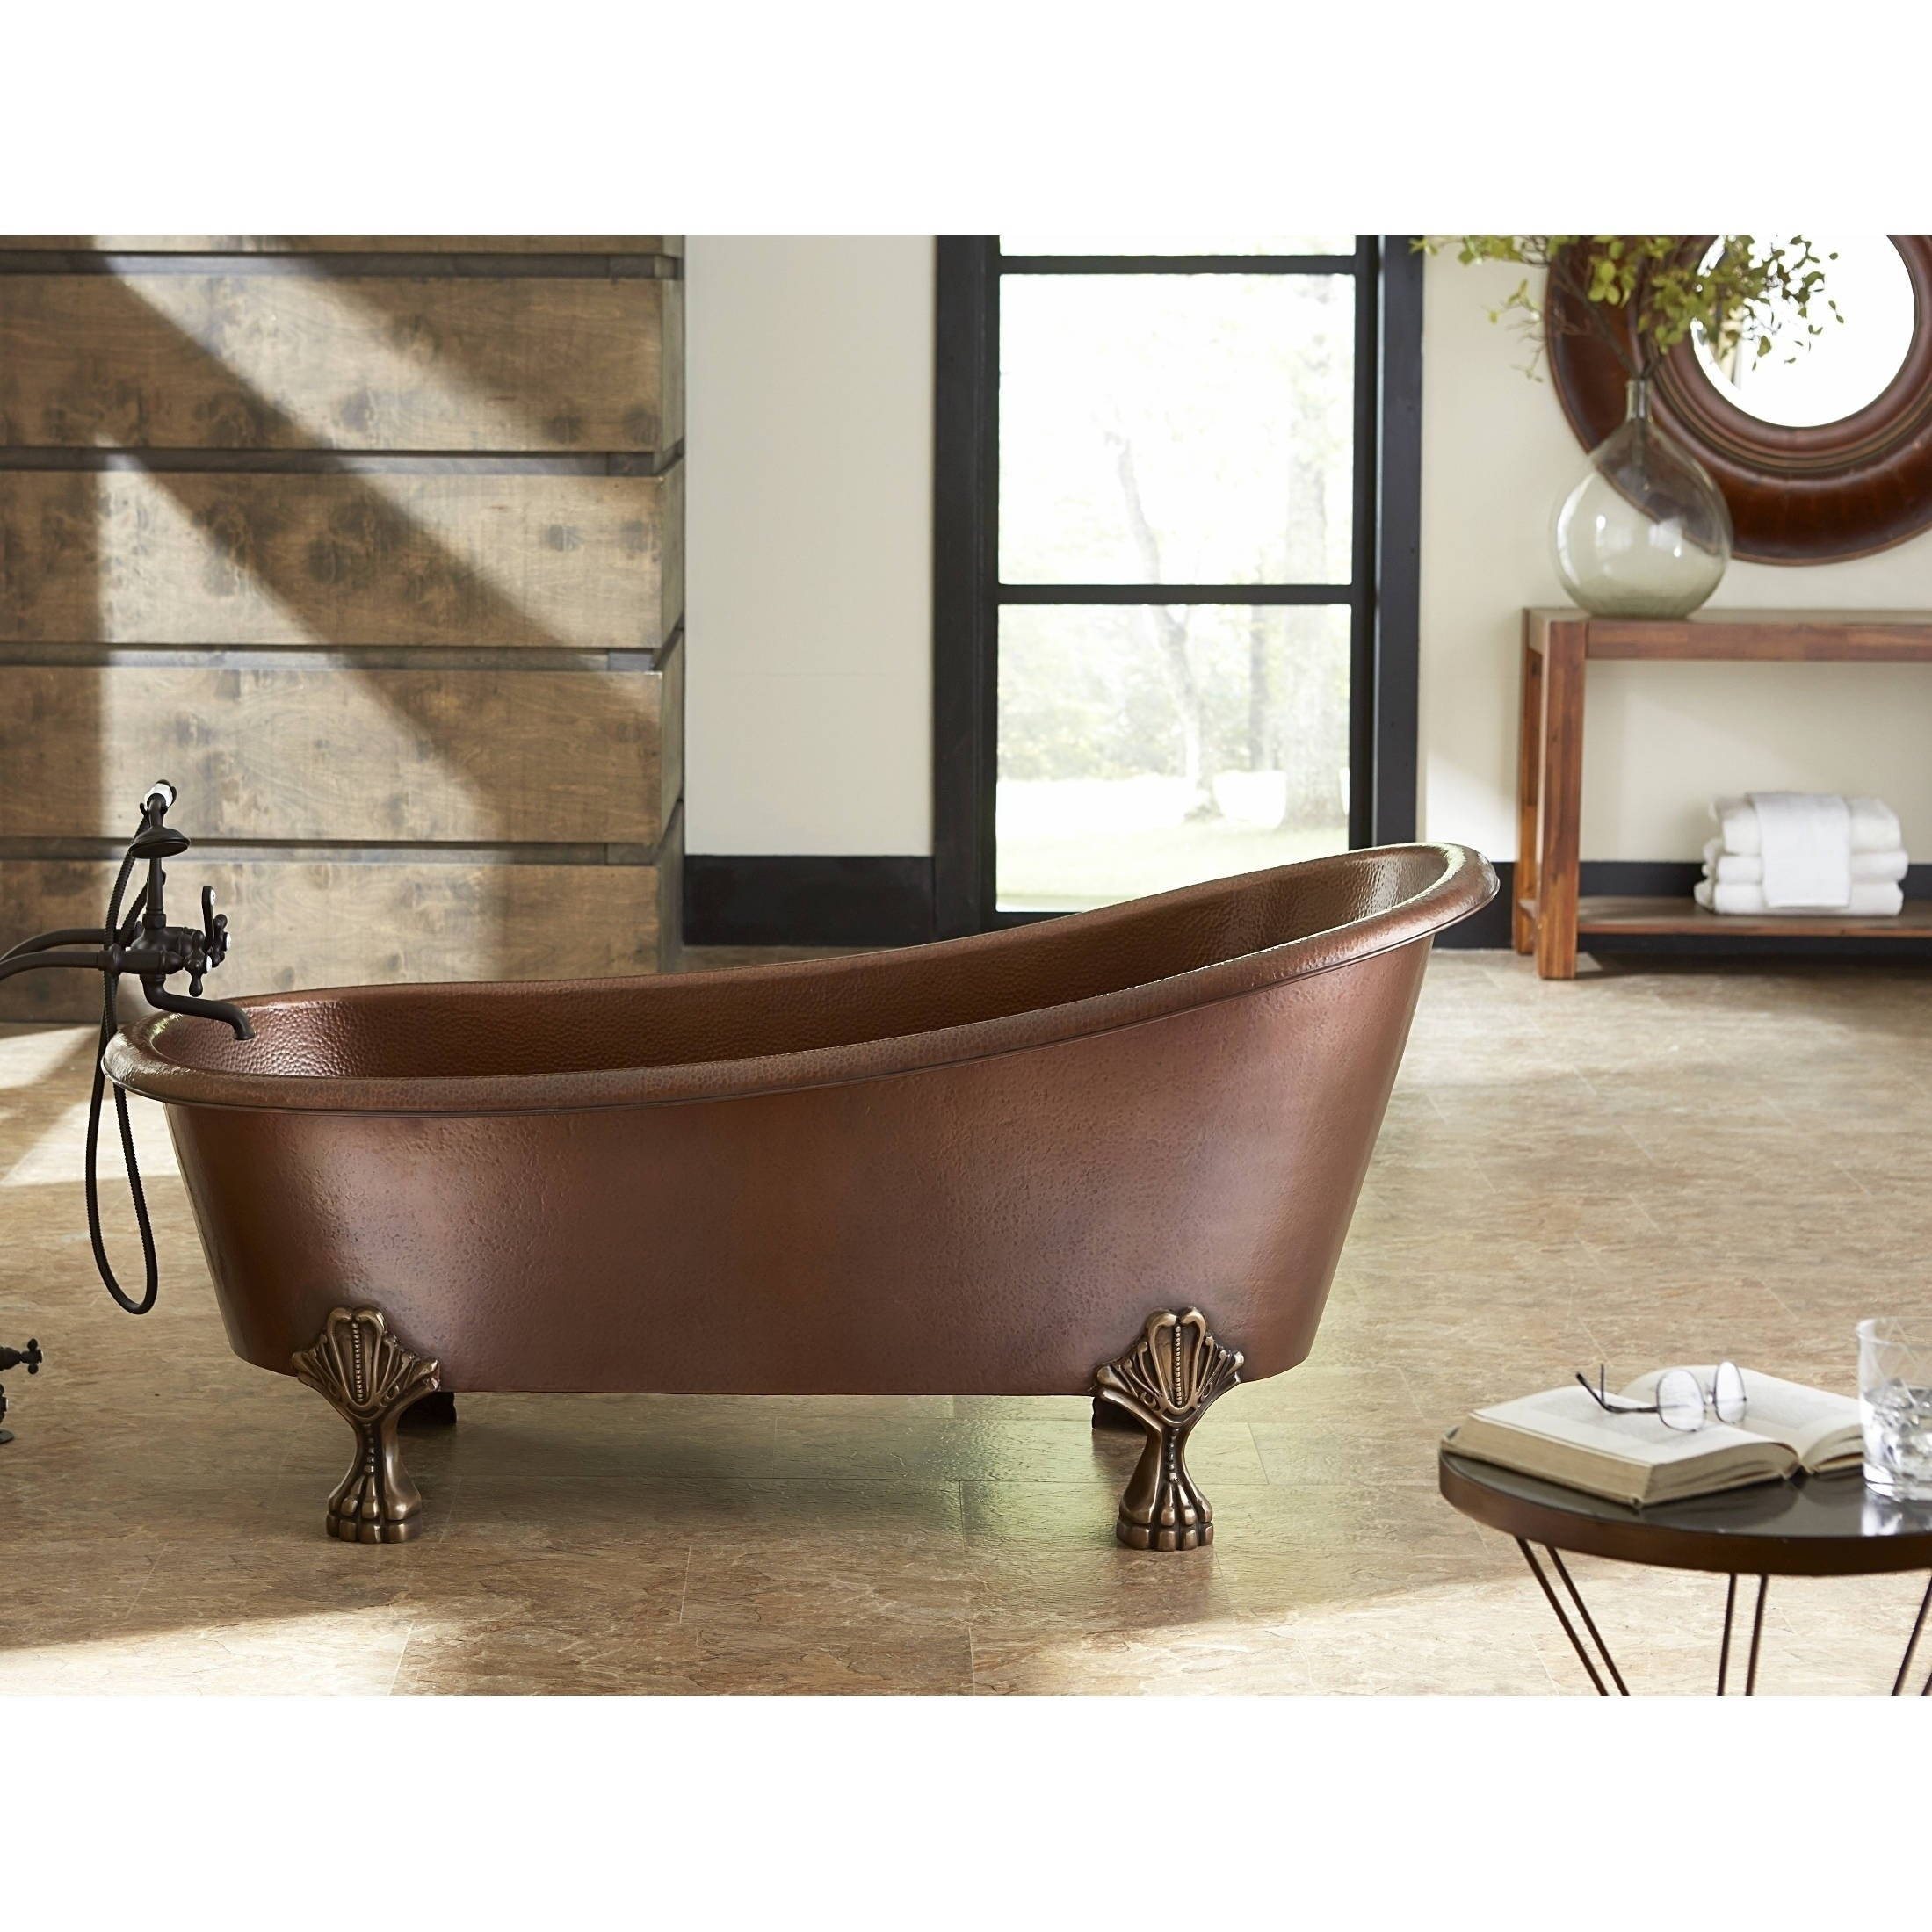 Shop Sinkology Heisenberg Freestanding Bathtub 5.5-foot Handmade ...